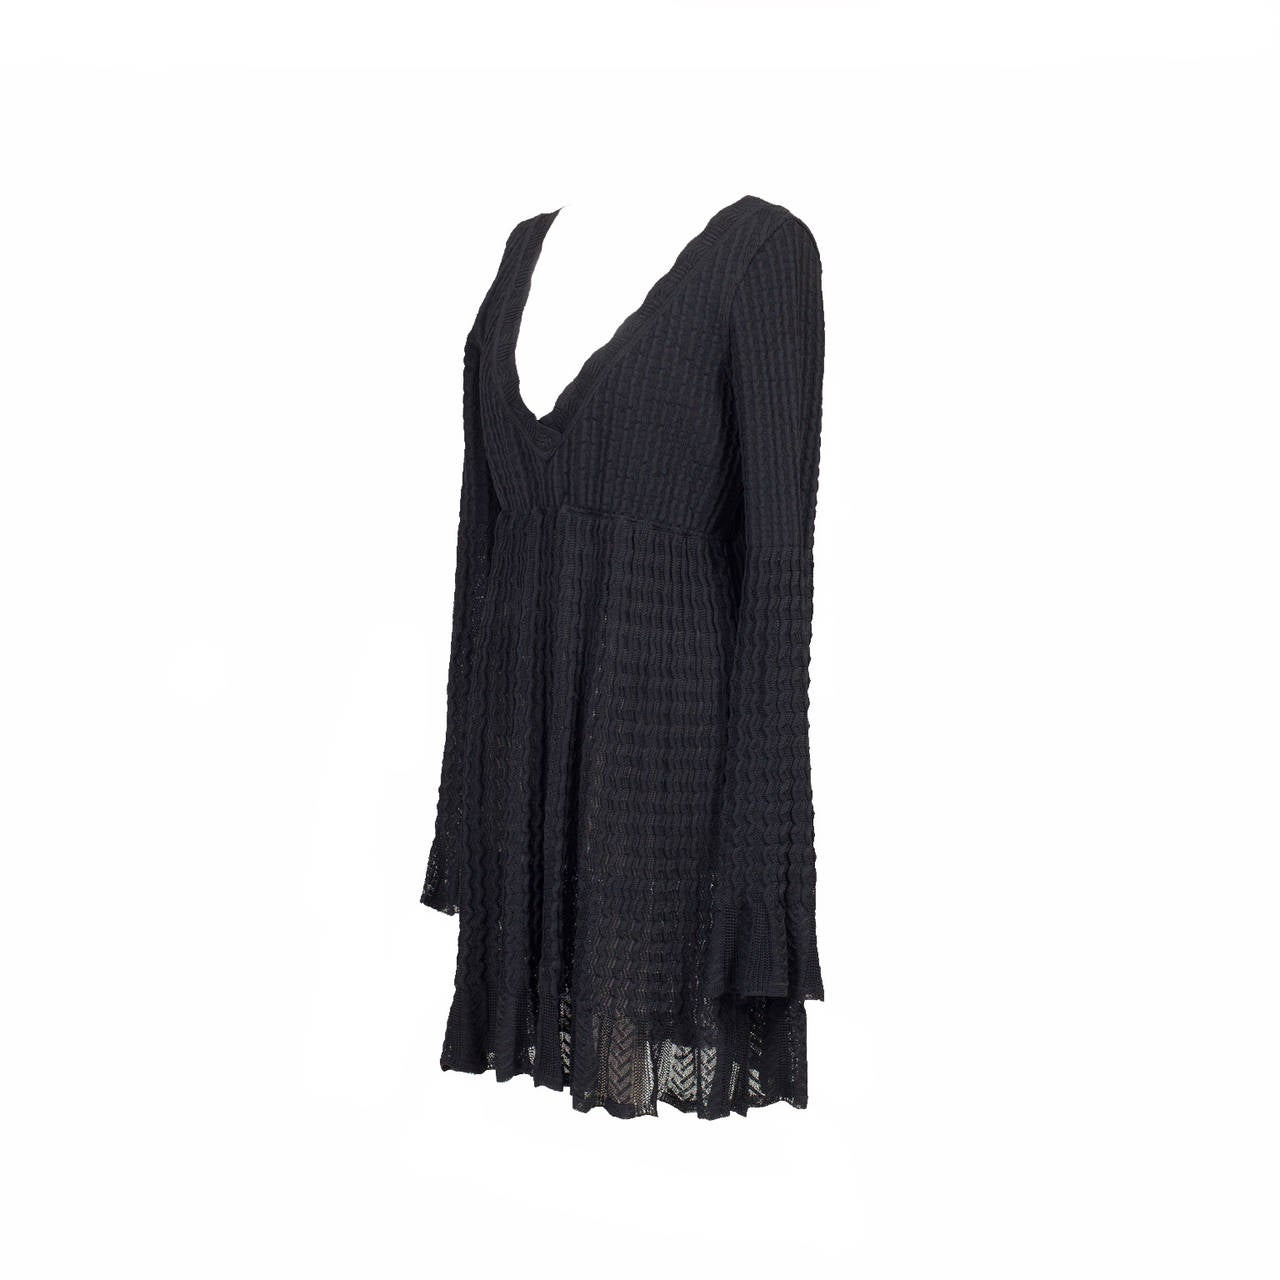 Alaia Black Knit Top Dress 1992 3